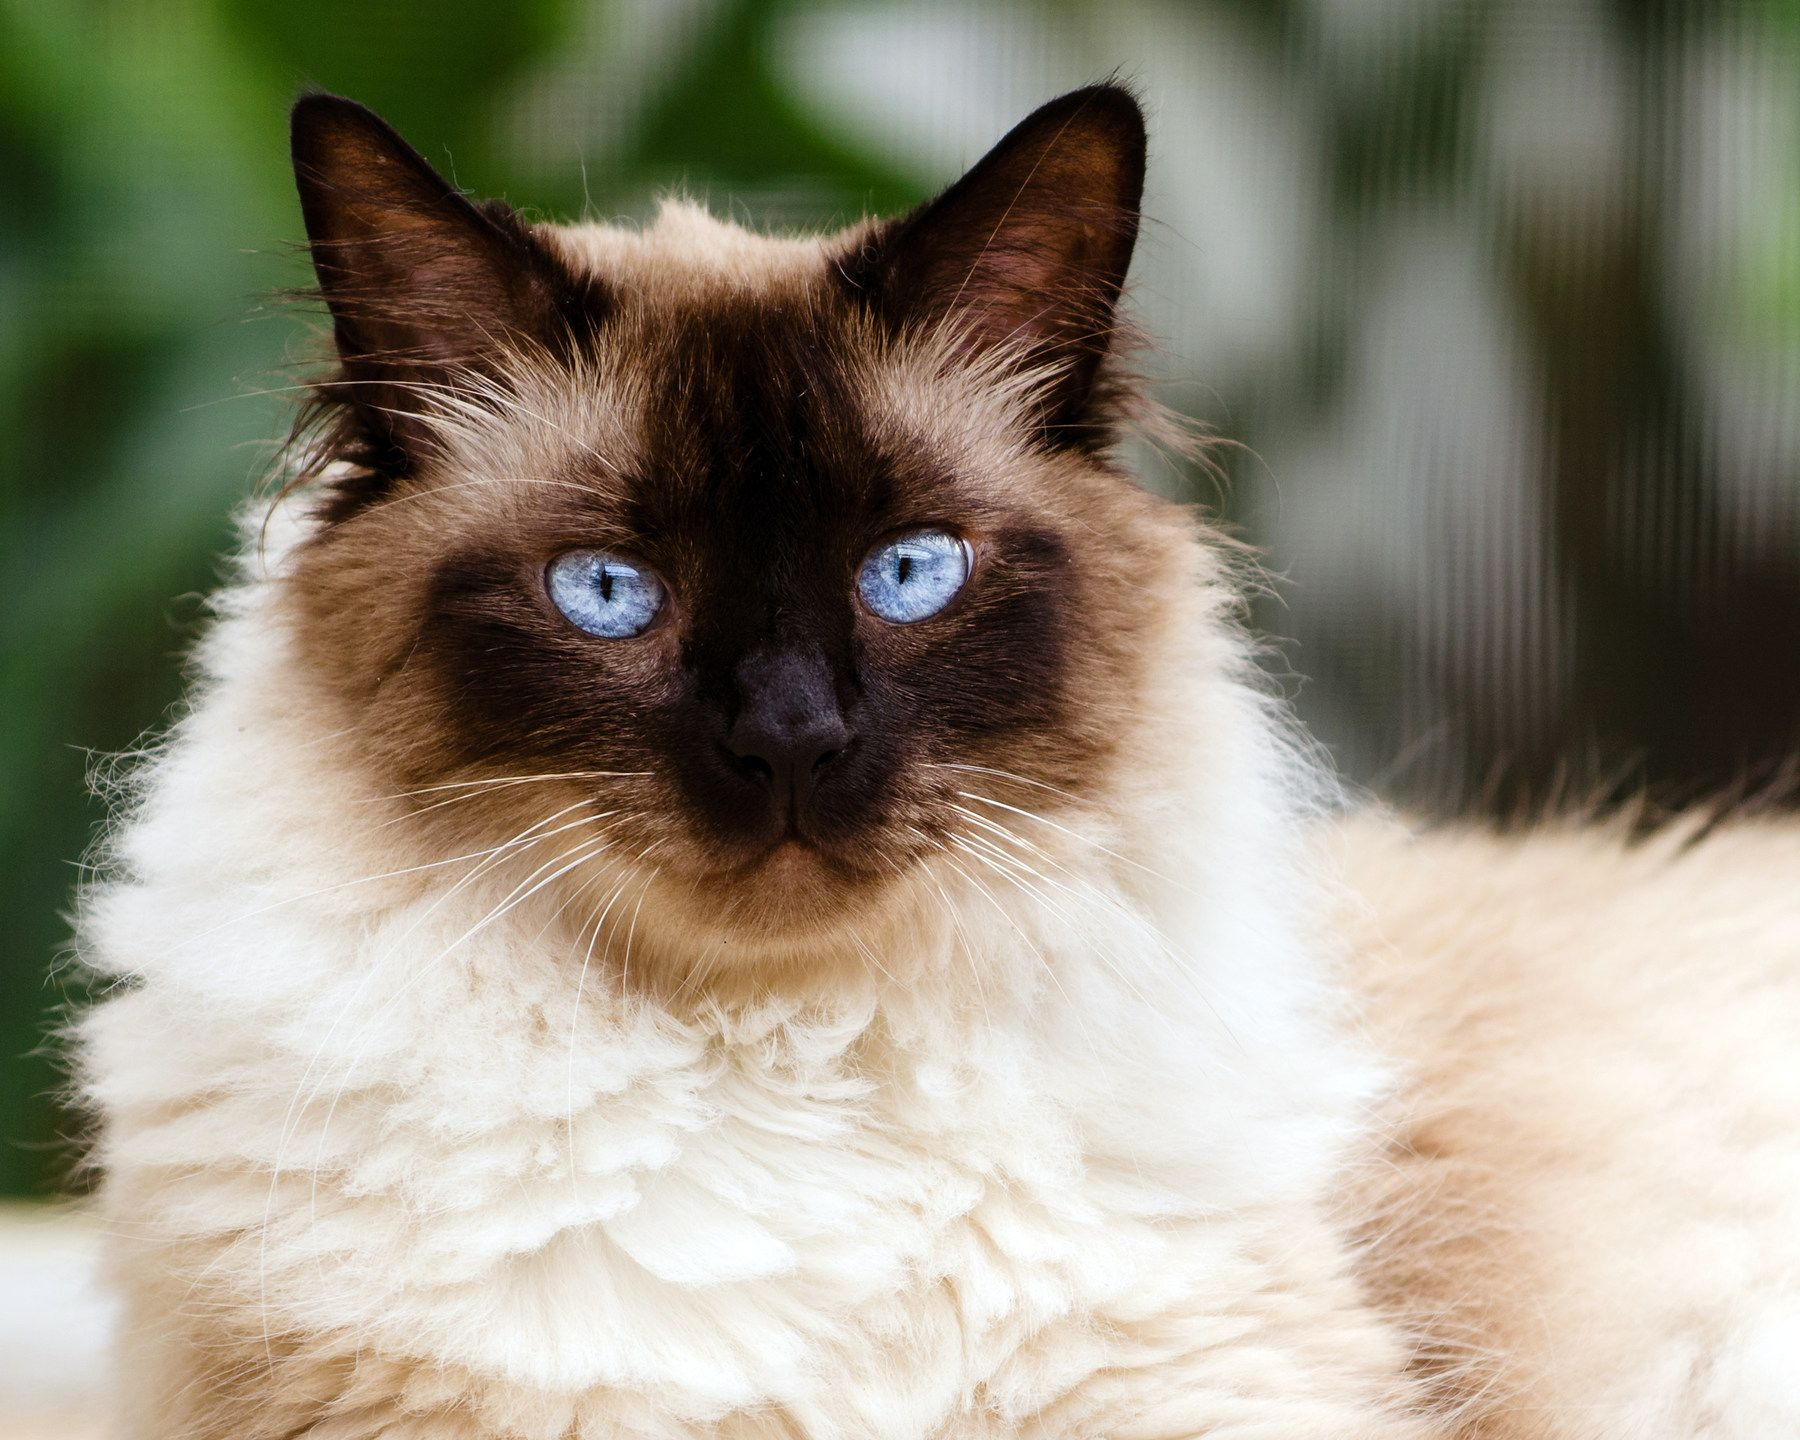 Portrait Of An Himalayan Cat The Himalayan Cat Is A Cross Between The Persian Cat And The Siamese Cat That Was De Himalayan Cat Cat With Blue Eyes Cat Breeds